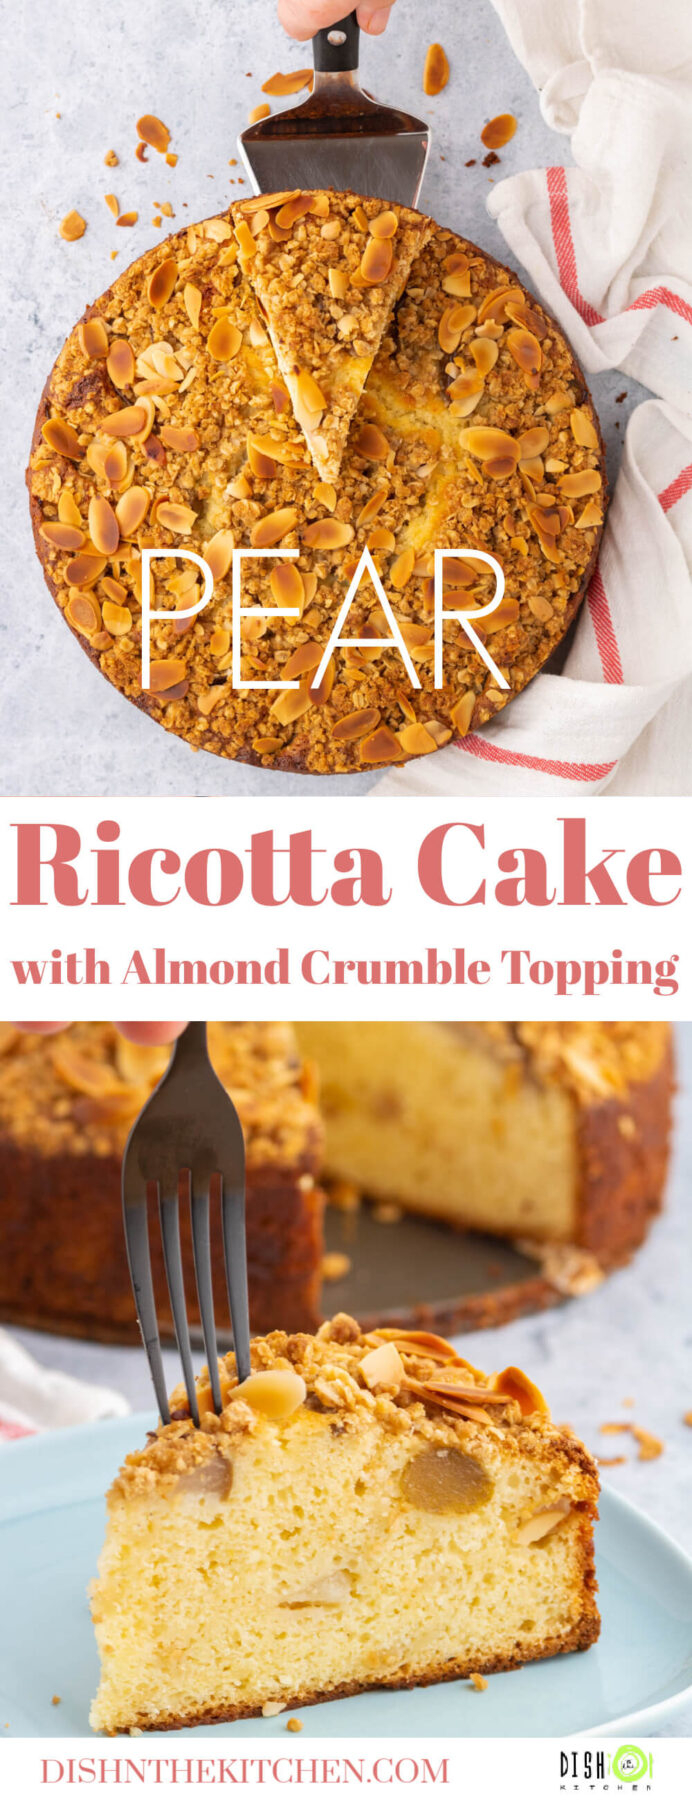 Pinterest image of a golden almond crumble topped pear ricotta cake with a slice of the same cake.